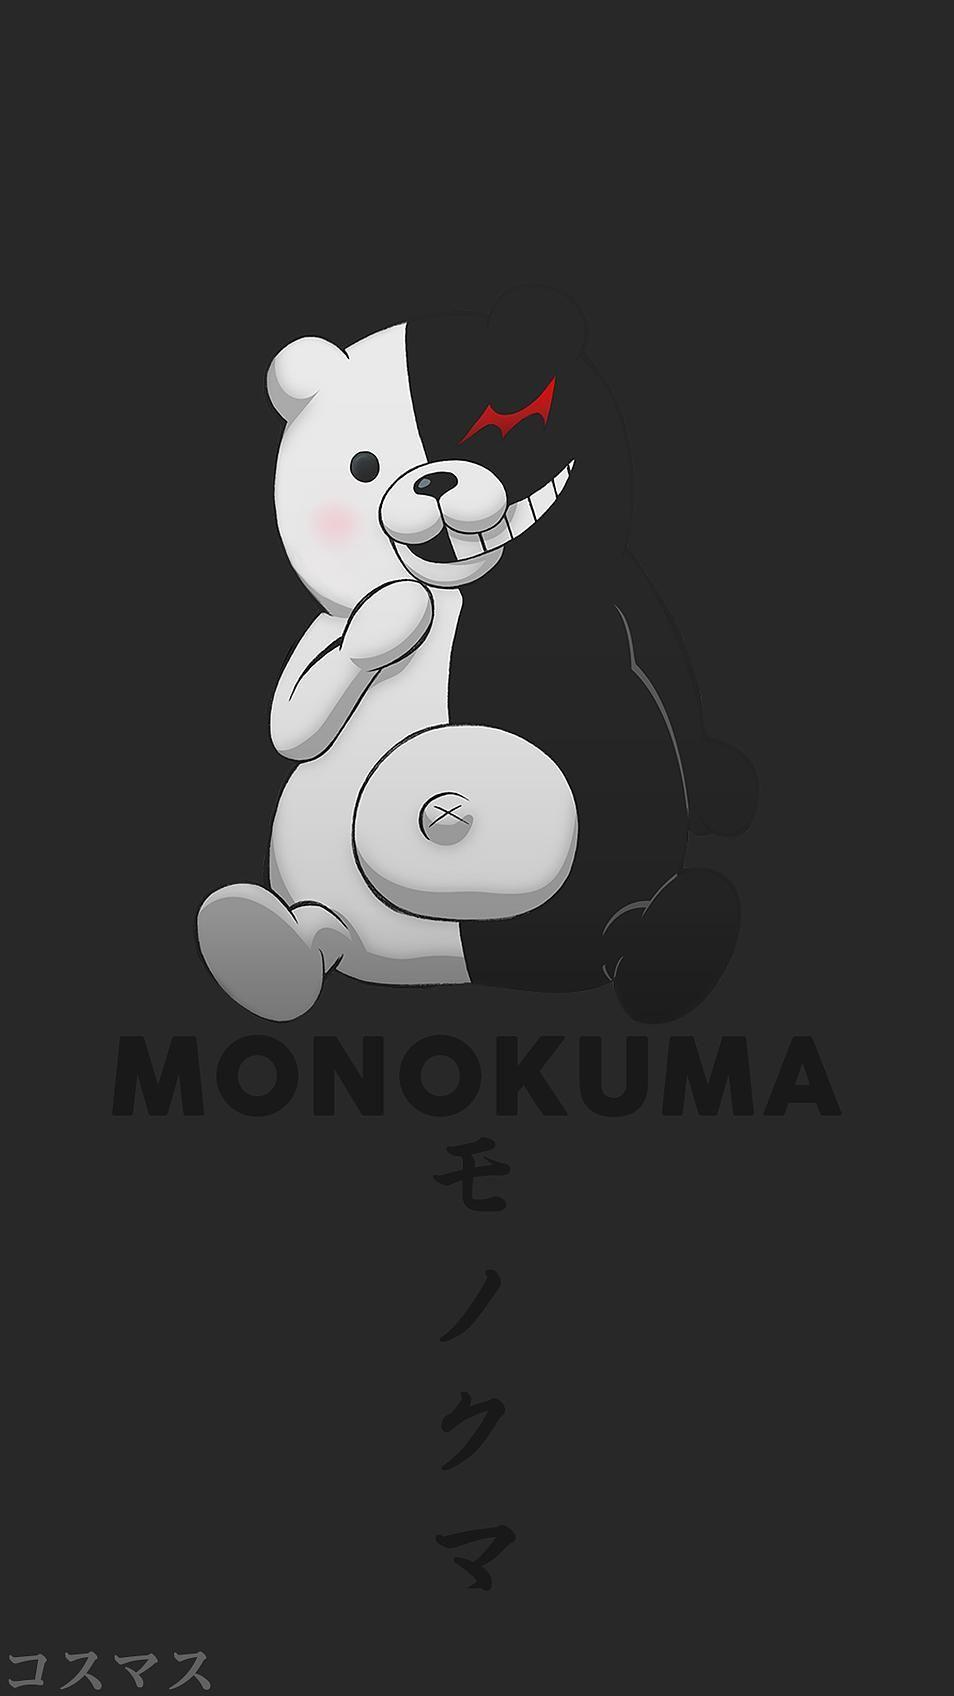 Danganronpa Wallpapers 4k Ultra Hd For Android Apk Download